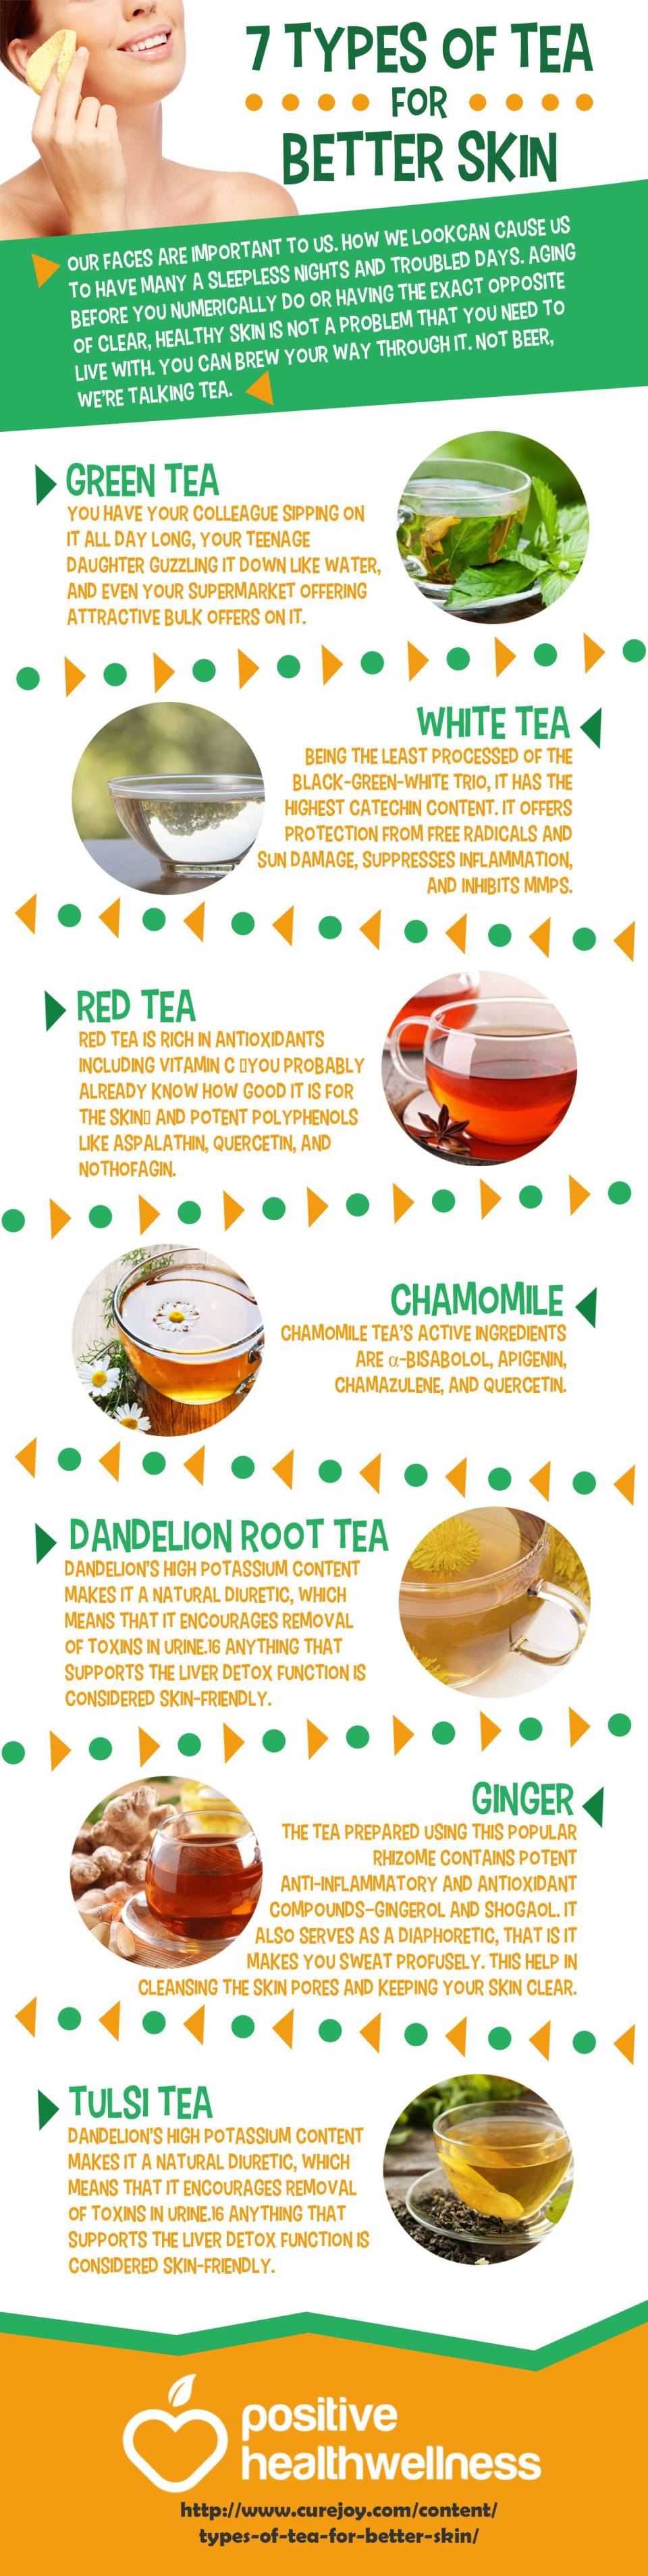 7 Types Of Tea for Better Skin